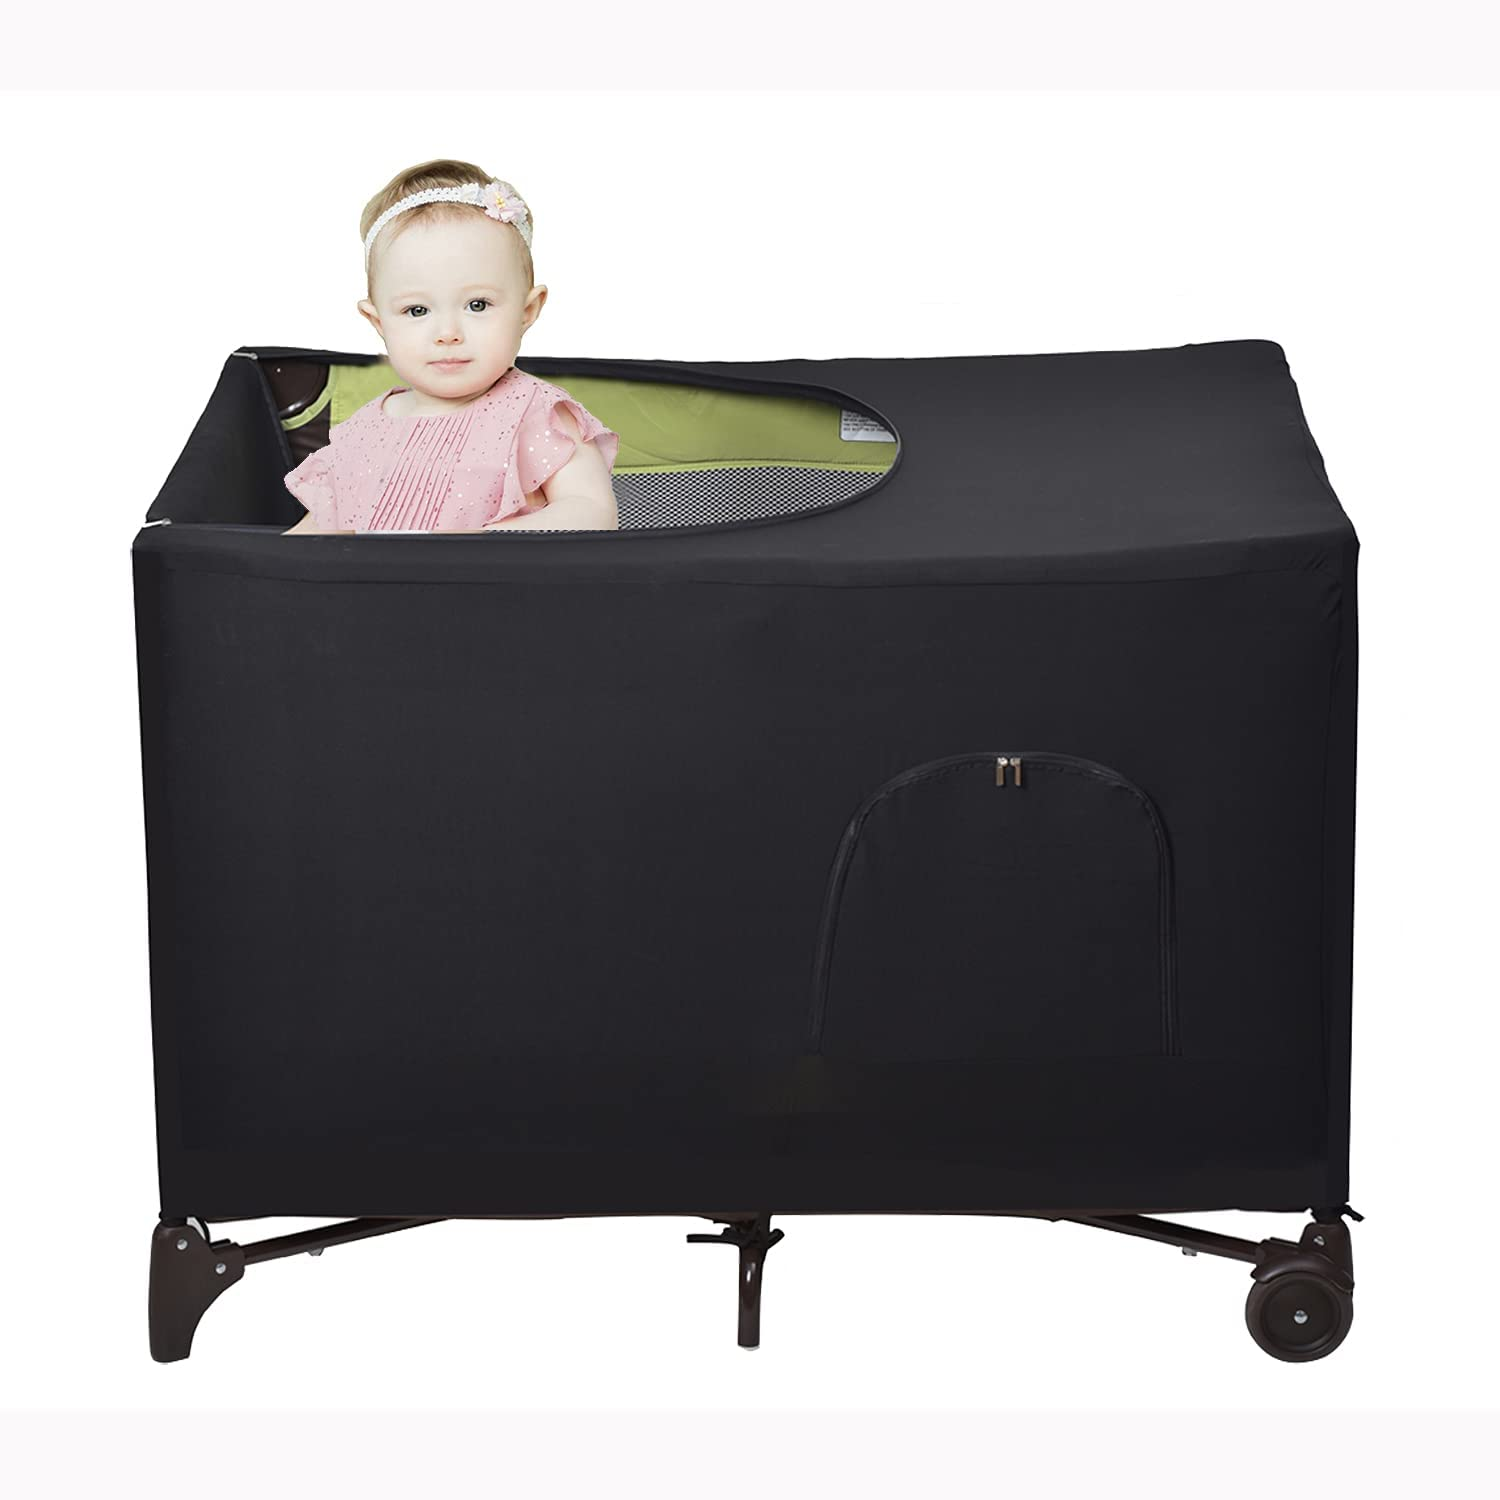 LYFFXYH Crib Blackout Canopy, Tent for Indoor or Outdoor Portable Crib Canopy Cover for Portable Travel Cribs, Stretchy Breathable Crib Netting Sleep and Cover Shade(Black)